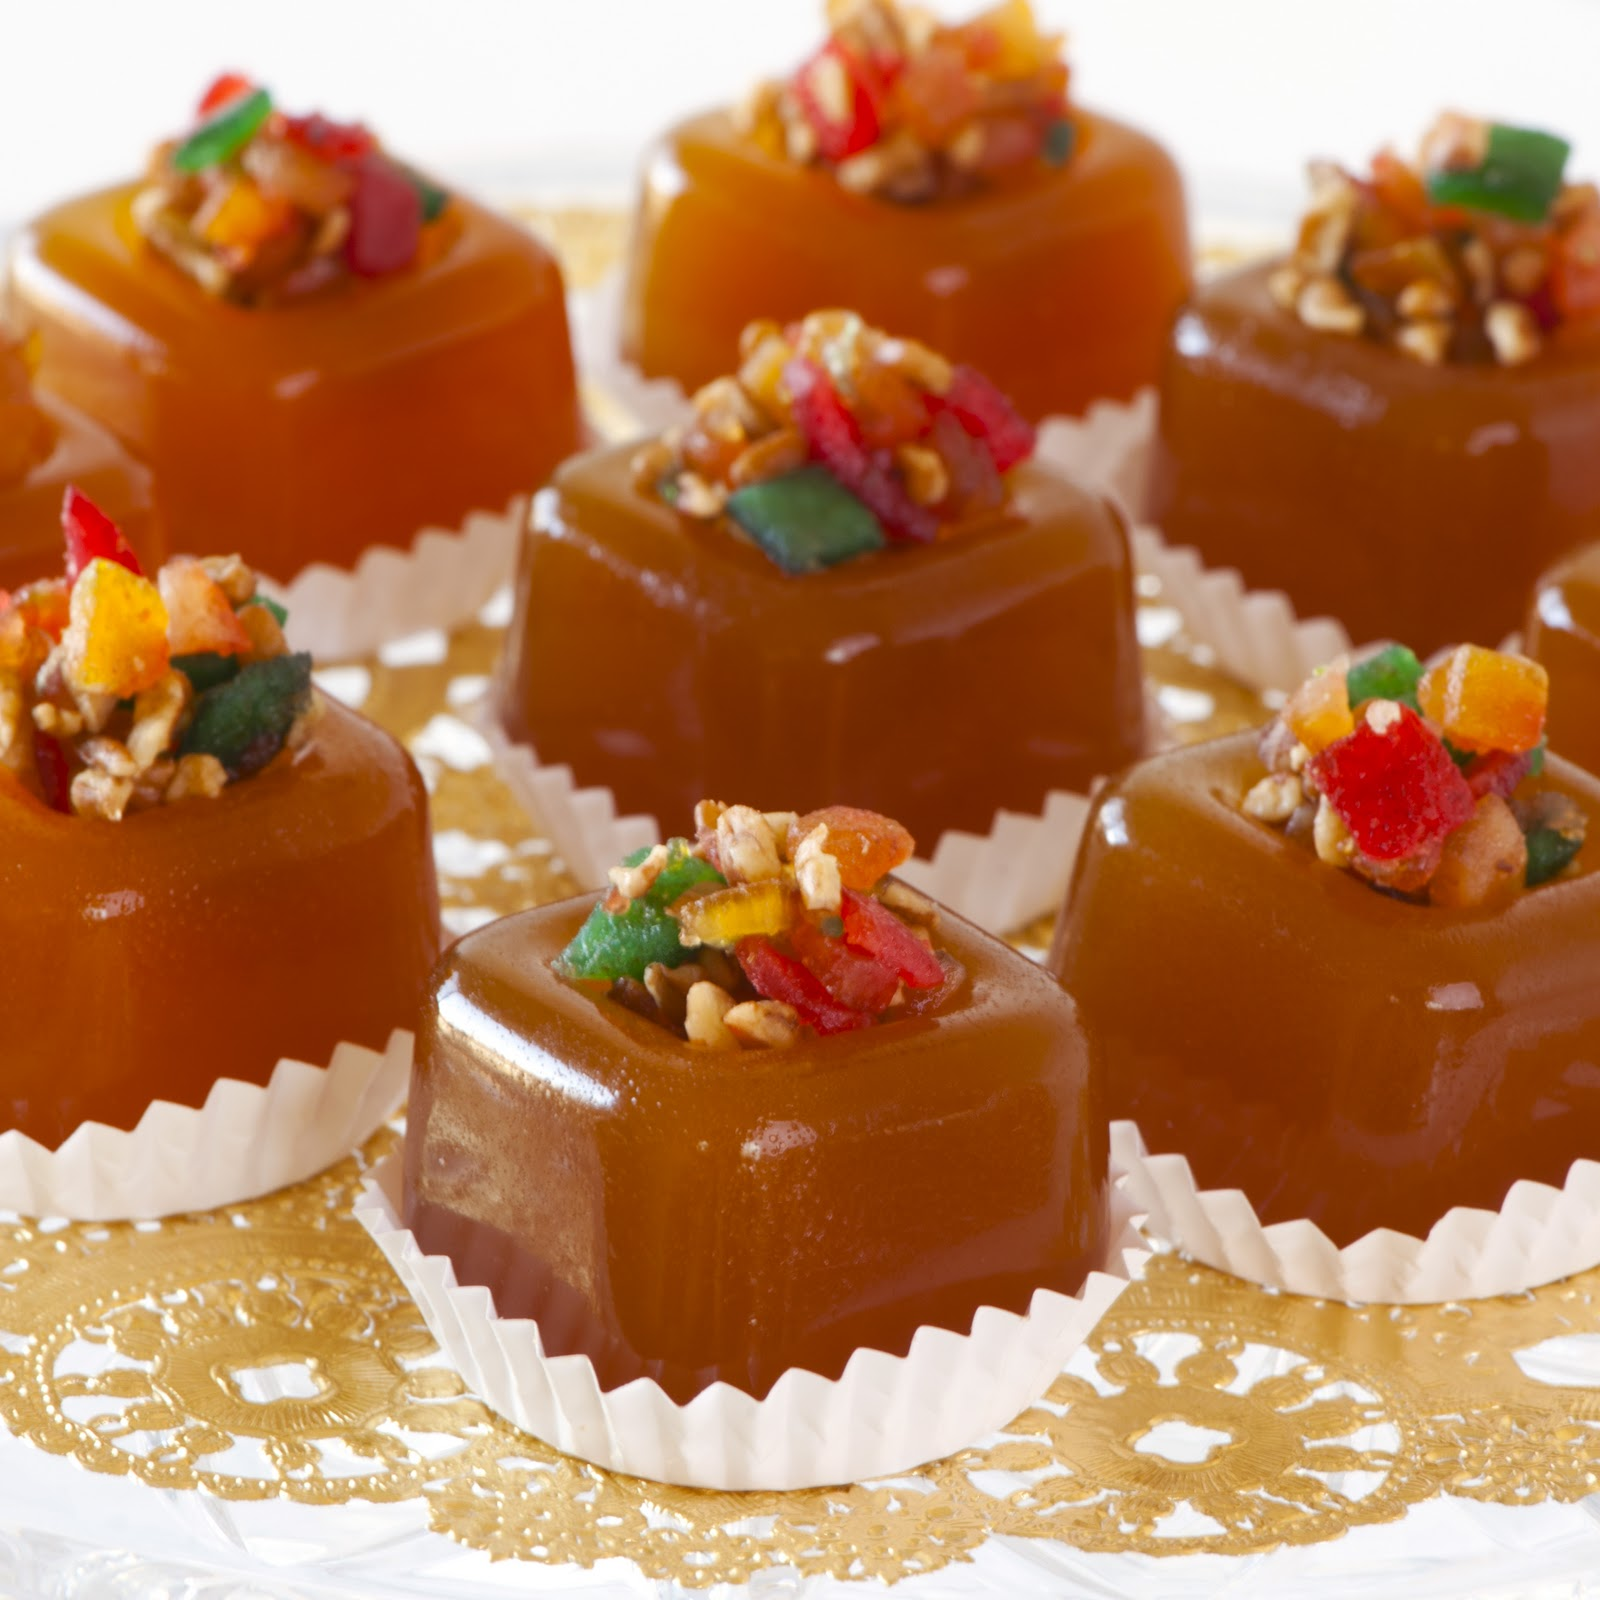 Home Style With A Side Of Gourmet: Christmas Jello SHots